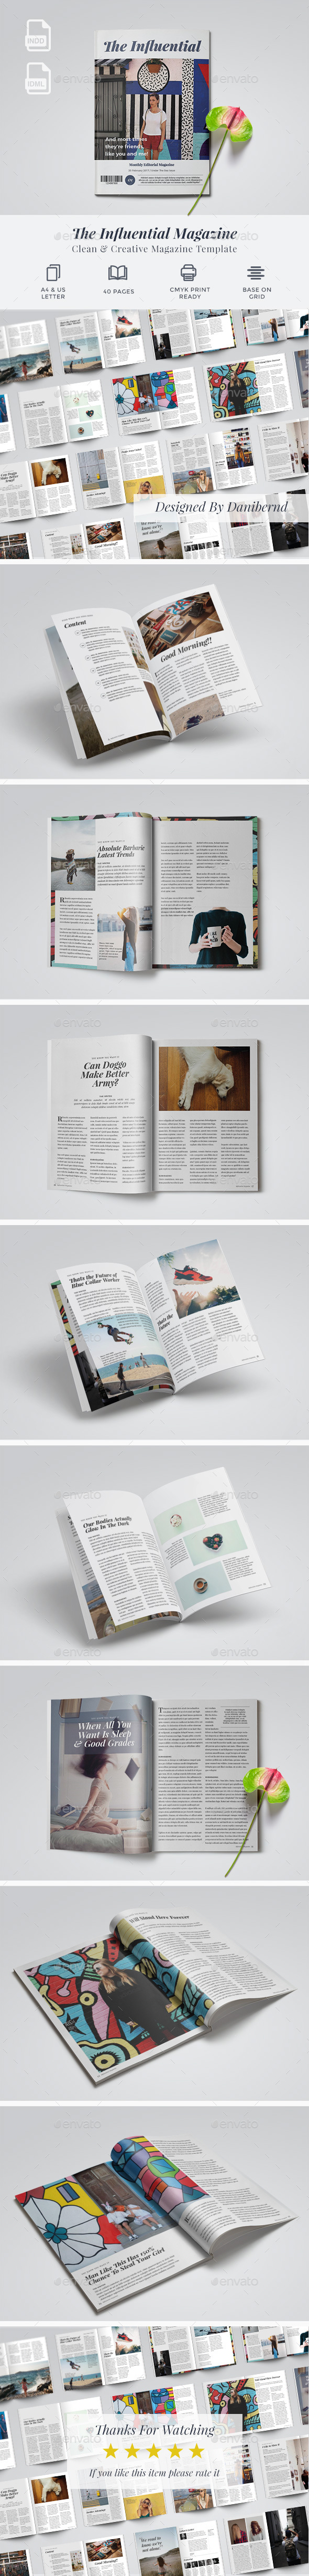 The Influential Magazine - Magazines Print Templates